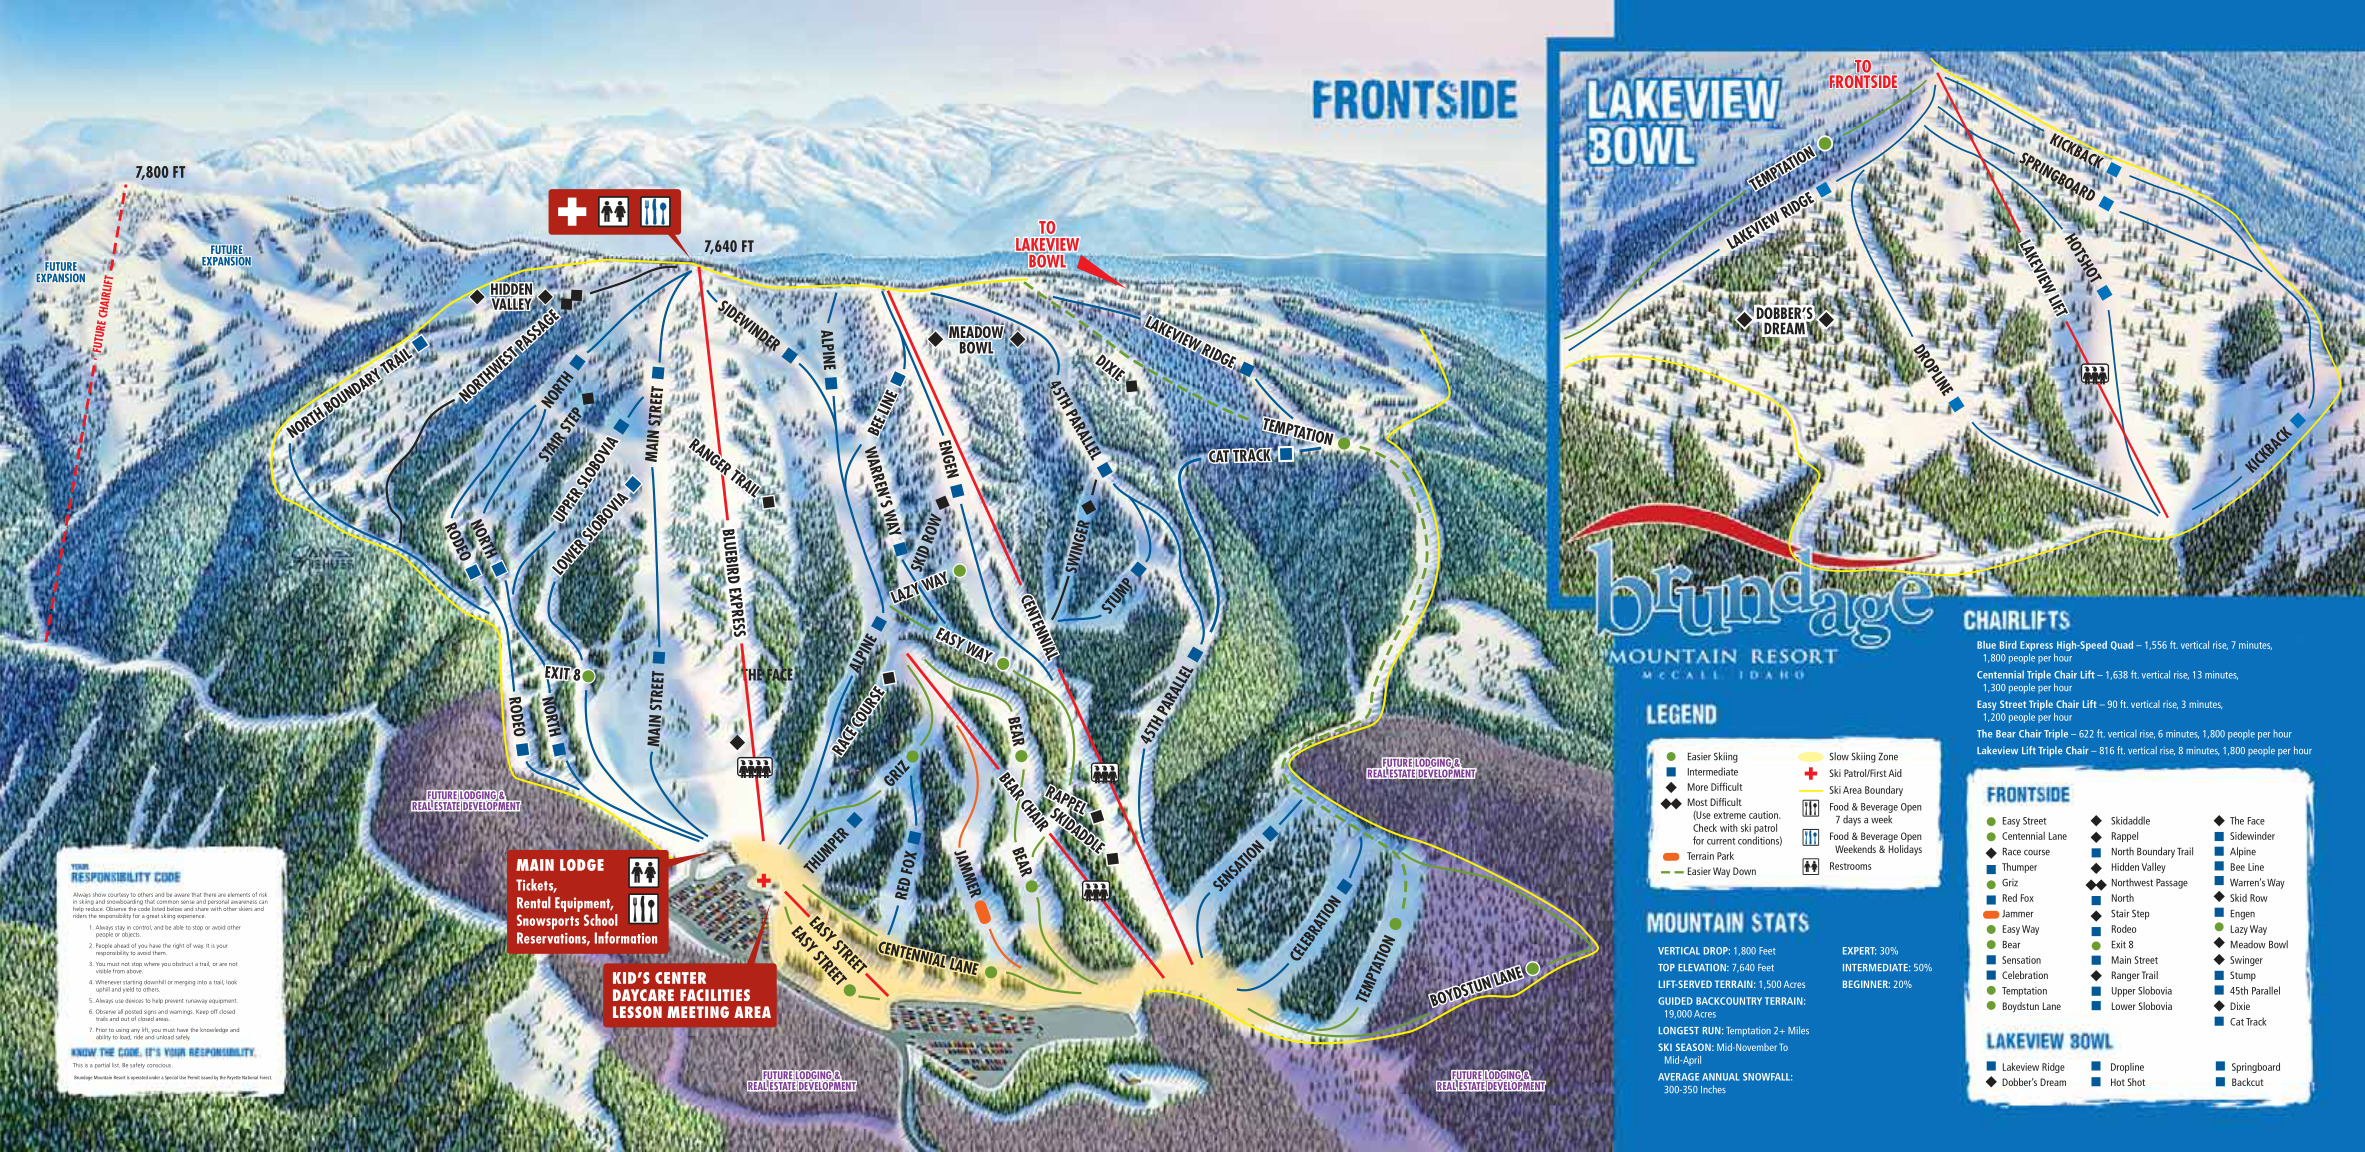 brundage mountain resort - skimap